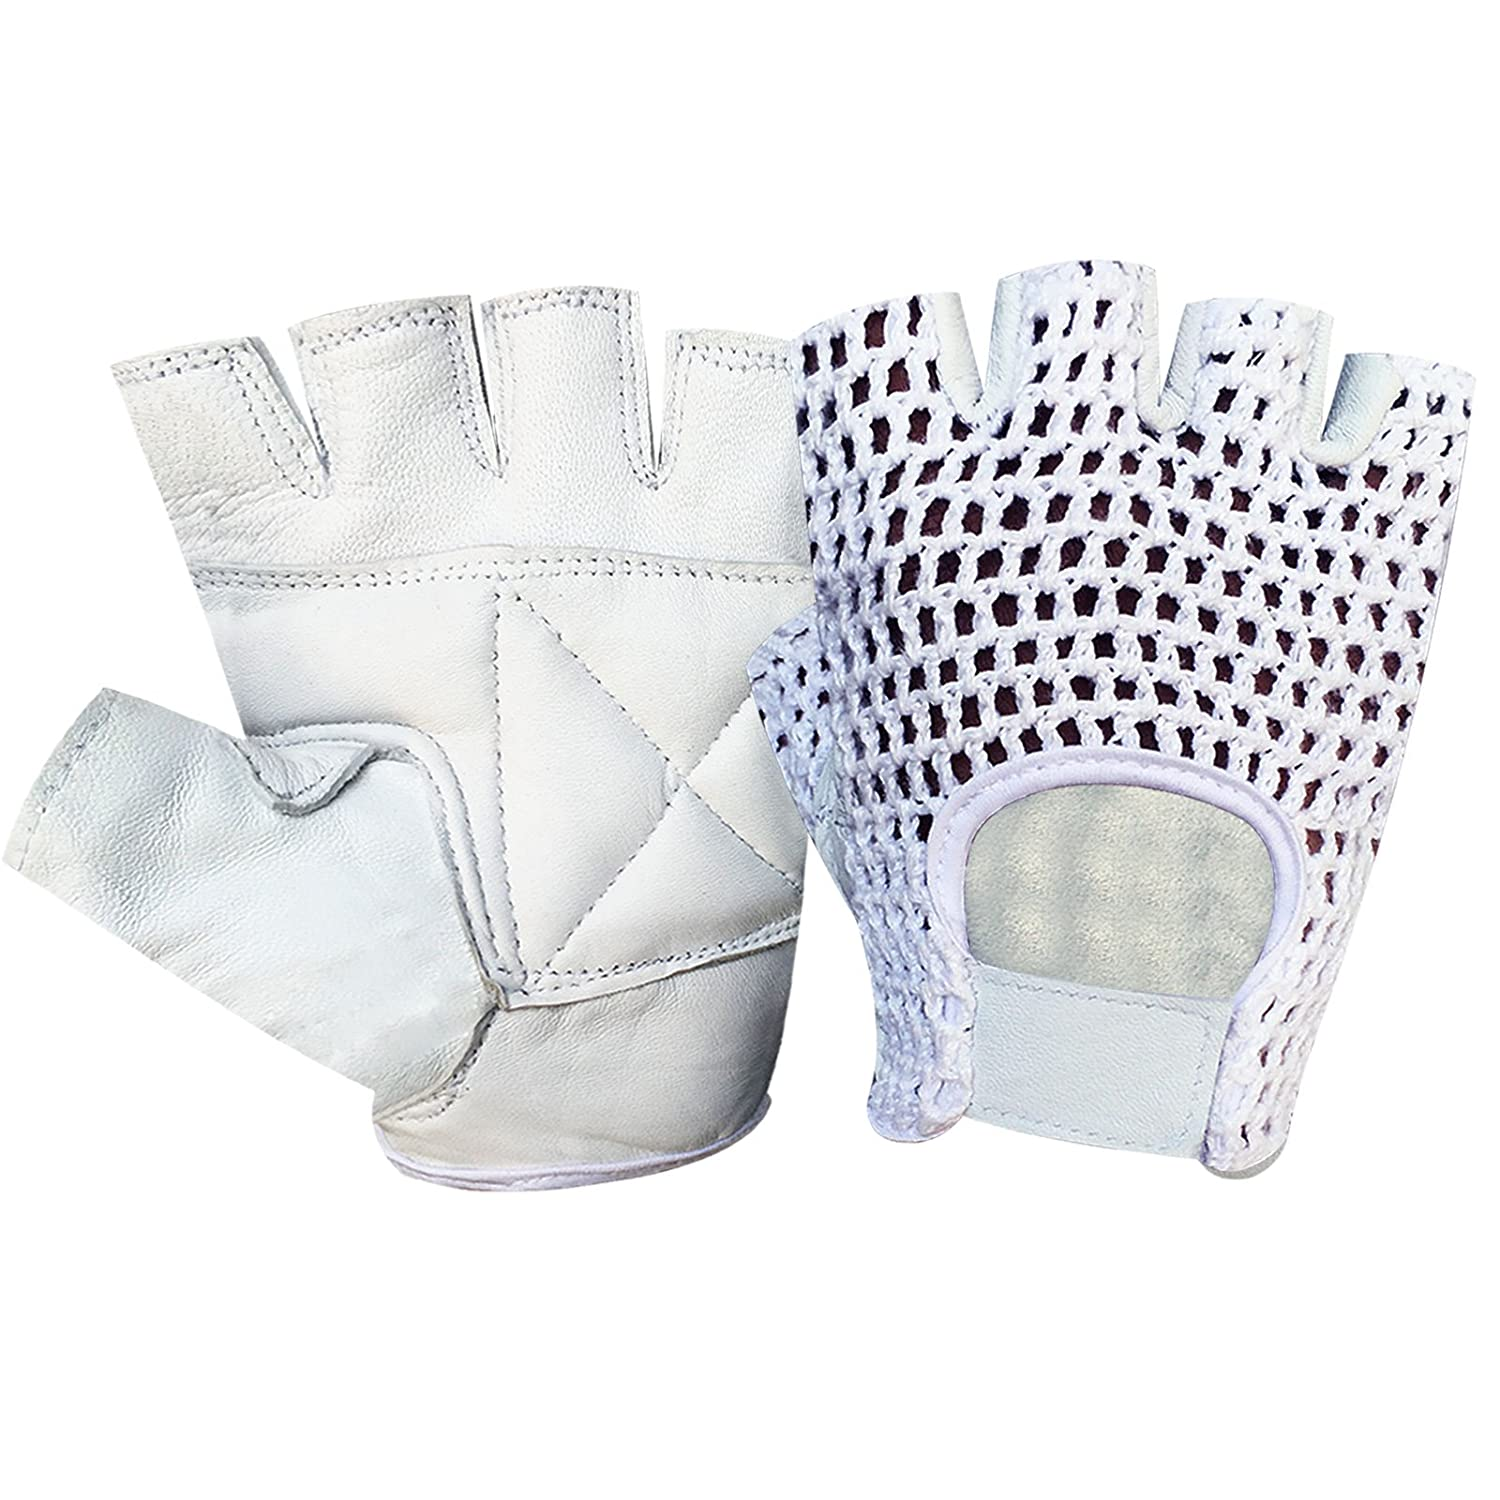 Bus Driving Leather Padded Gloves Gym Weight Lifting Exercise Fitness Training